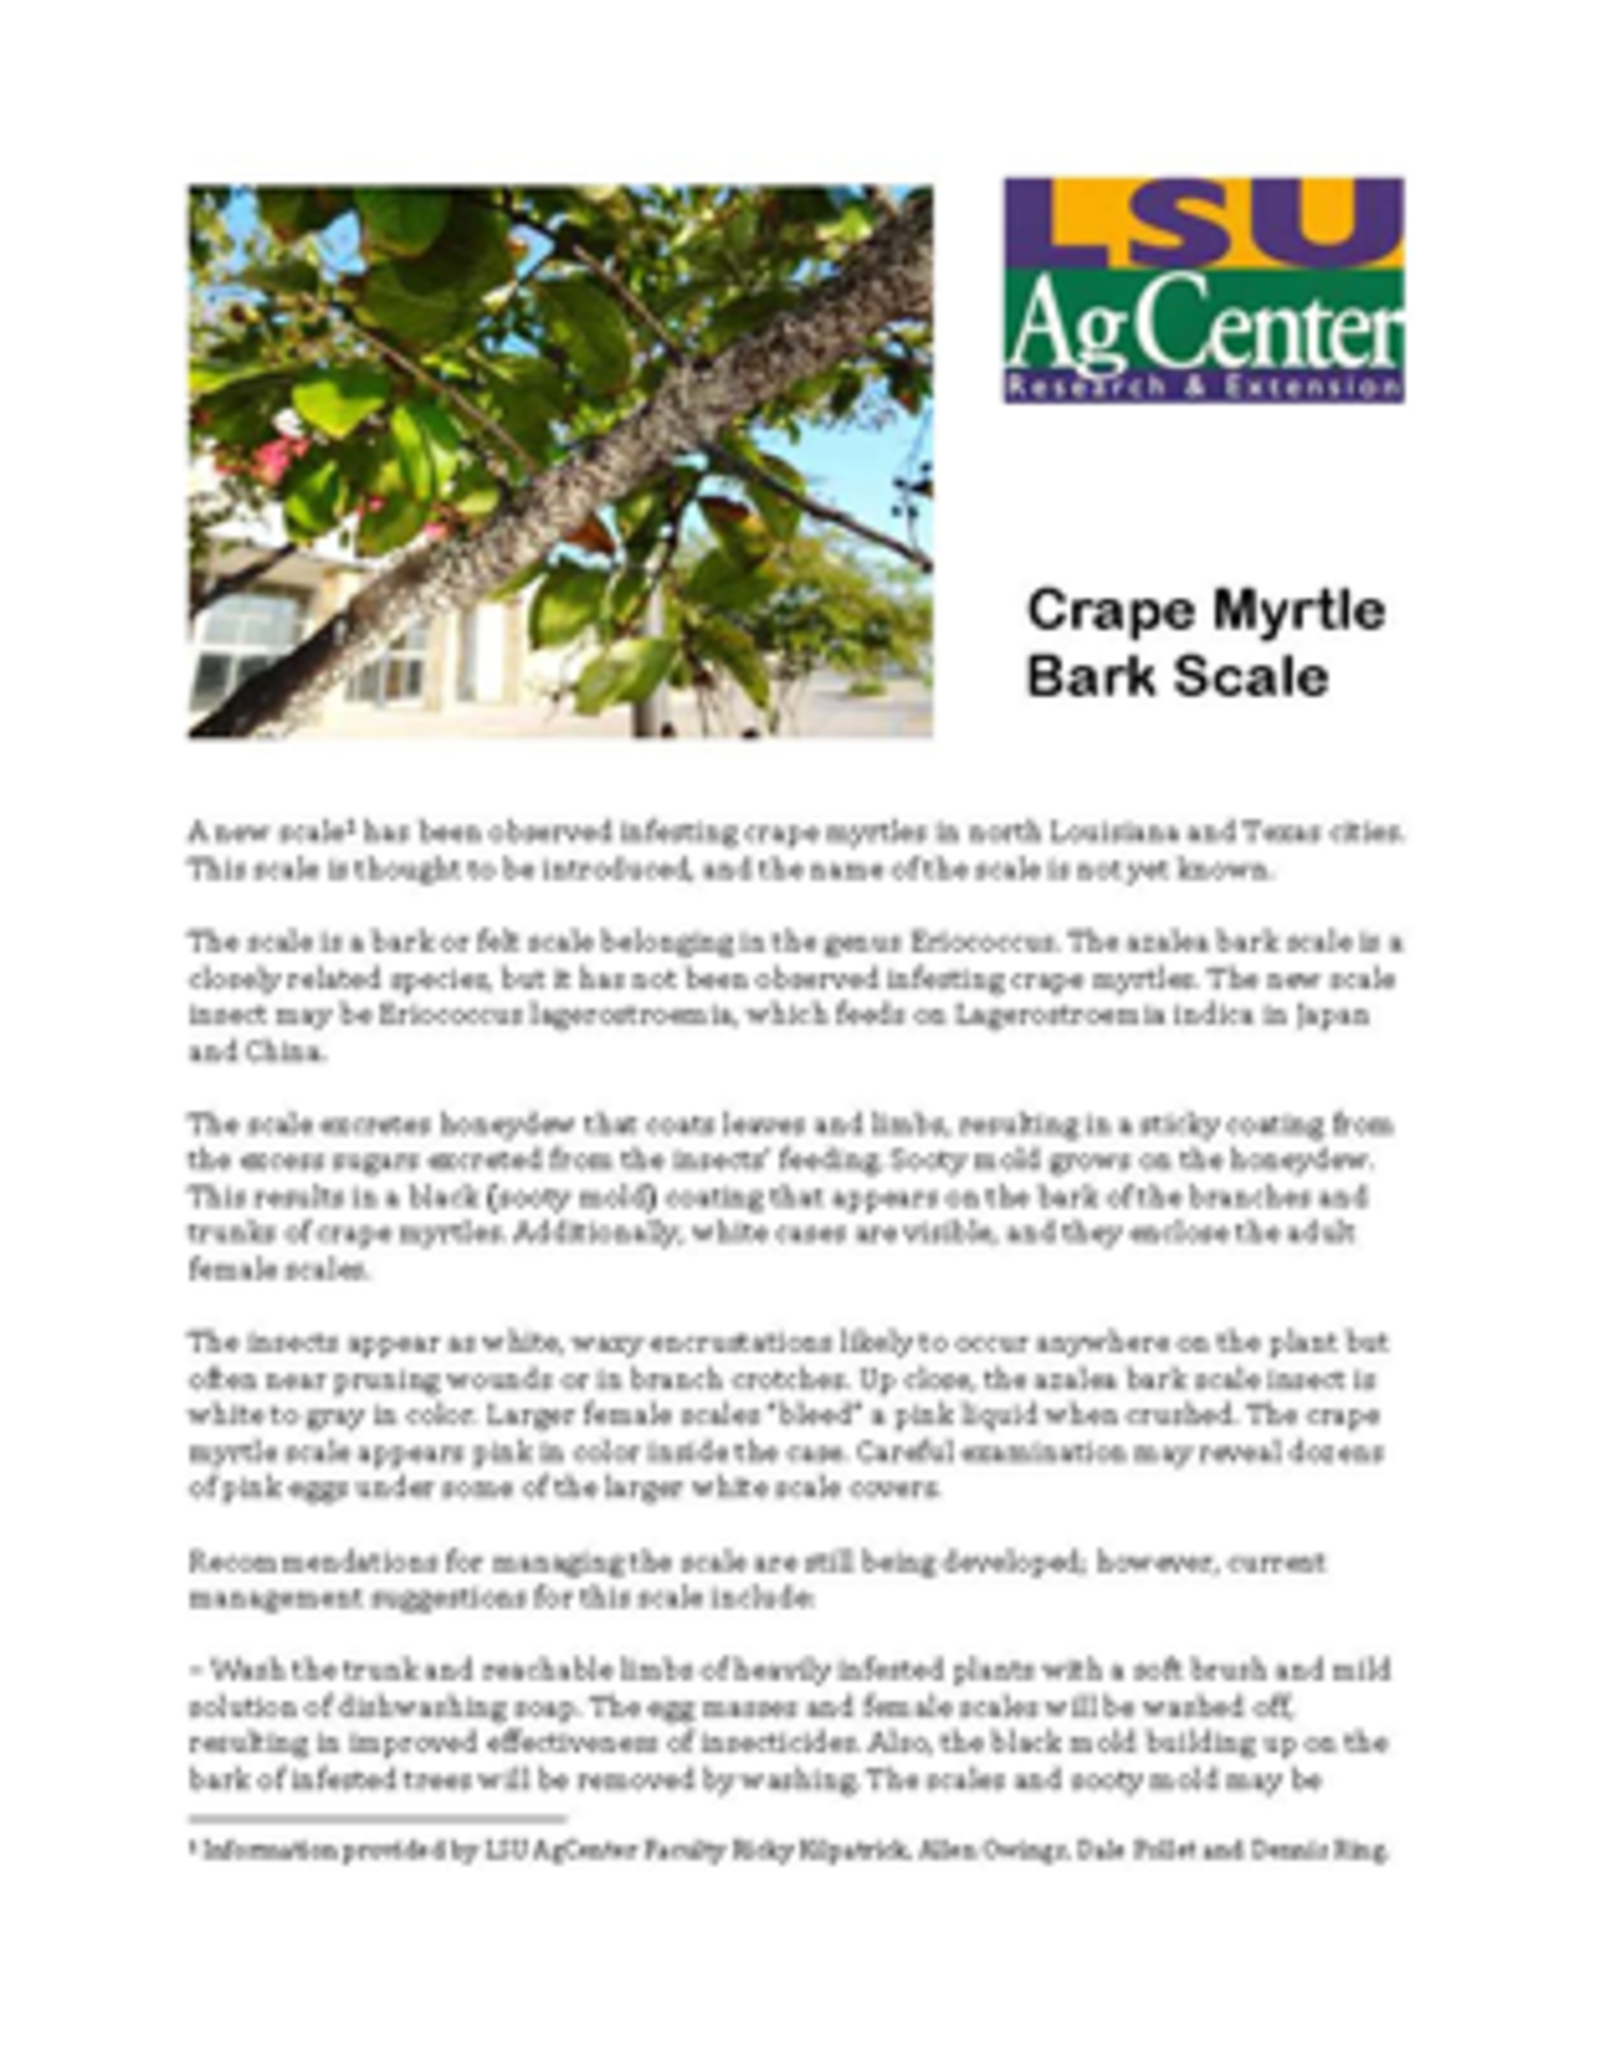 Crape Myrtle, Insect, Scale